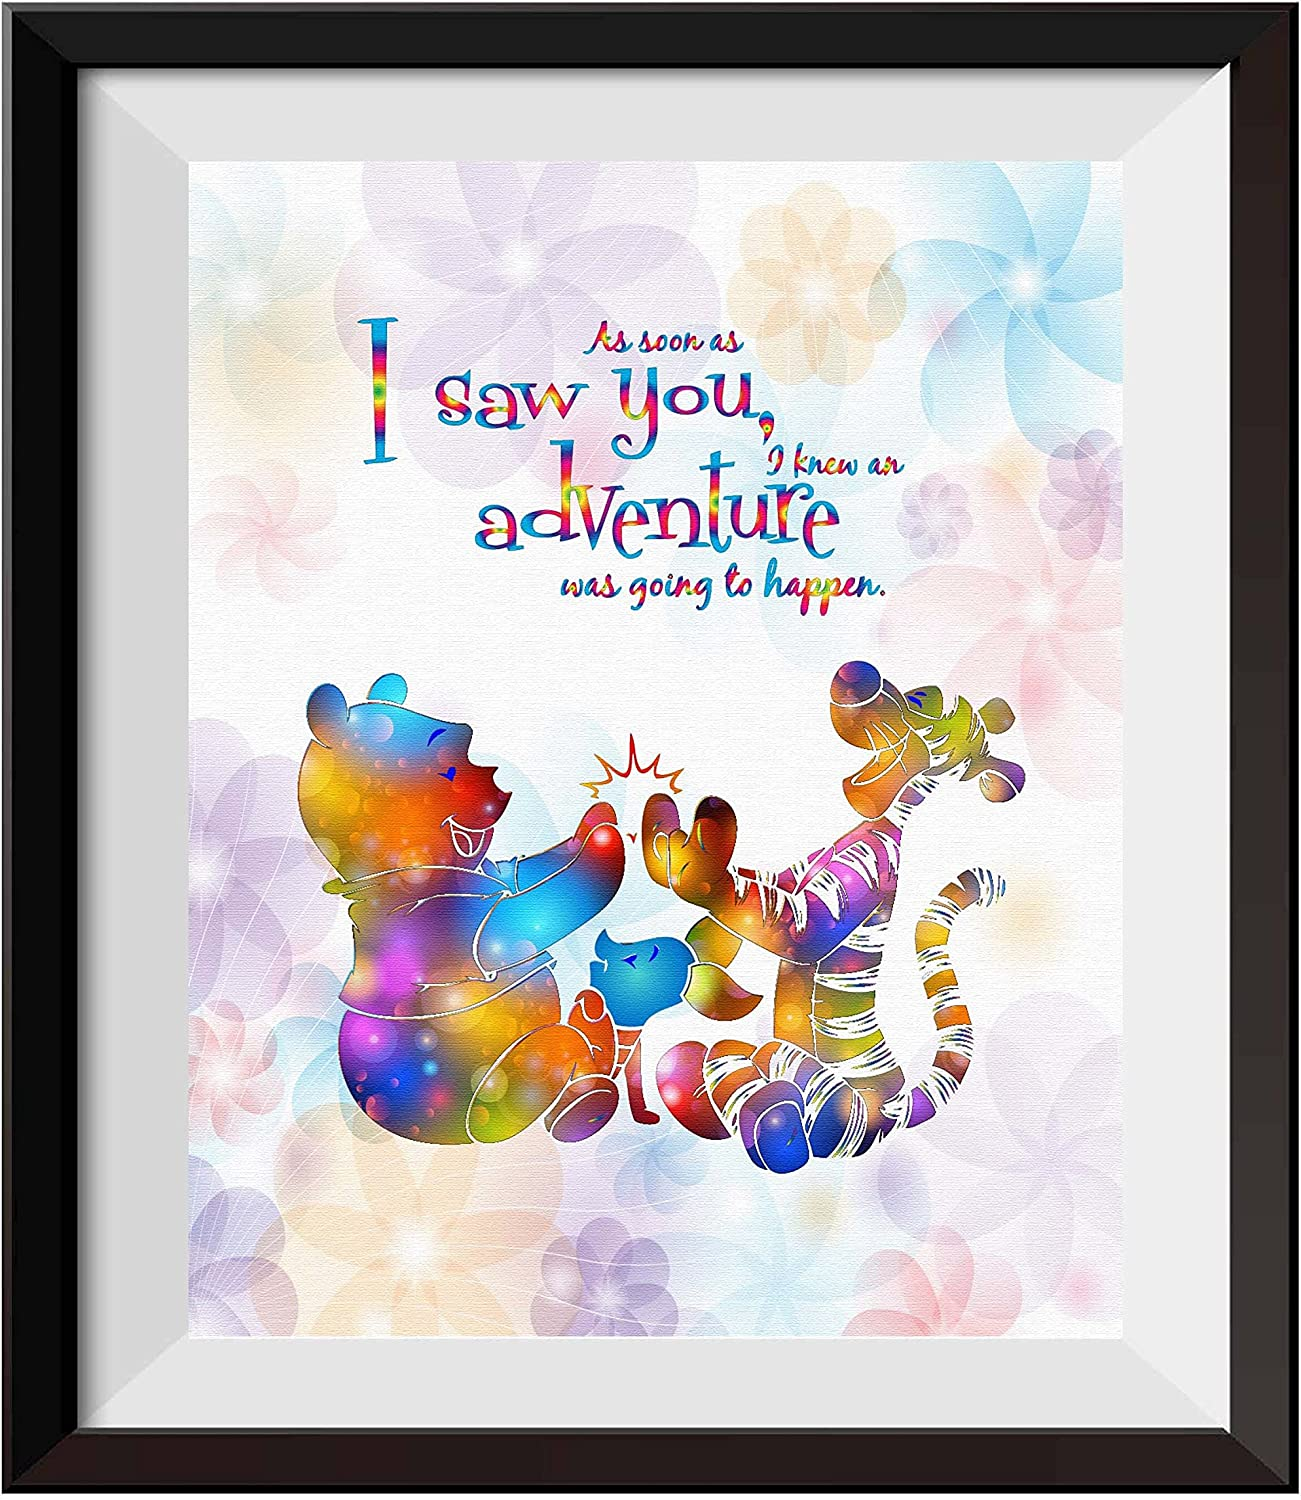 Uhomate Nursery Decor Winnie The Pooh Quotes Winnie Pooh Home Canvas Prints Wall Art Baby Gift Inspirational Quotes Wall Decor Living Room Bedroom Artwork C094 (8X10)